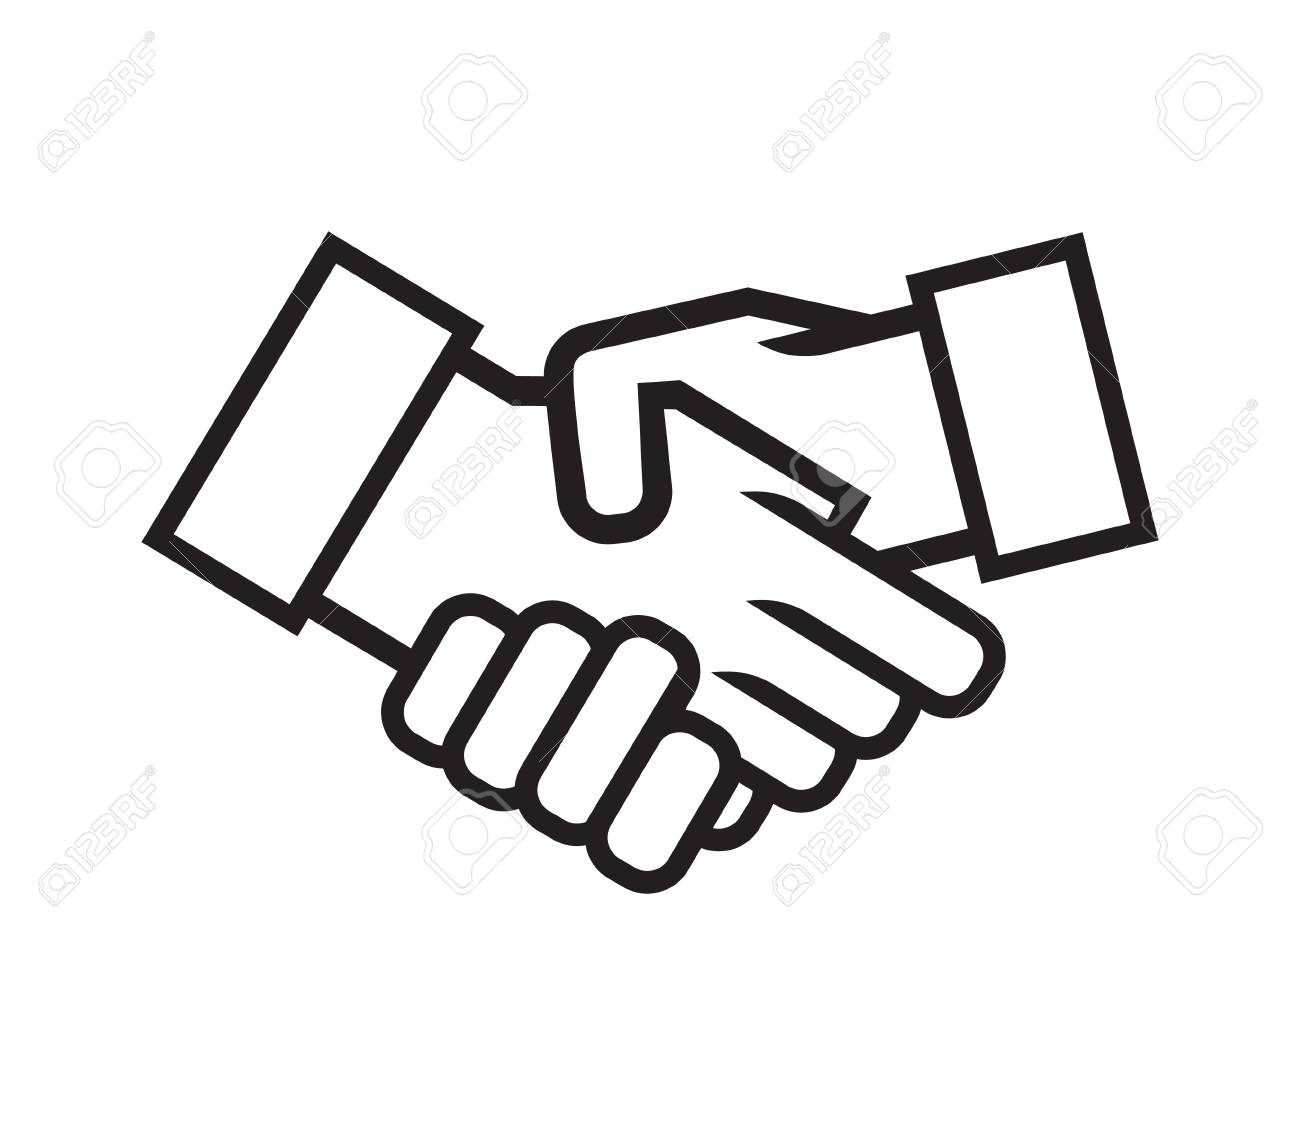 business handshake vector icon royalty free cliparts vectors and rh 123rf com handshake vector icon free handshake vector free download